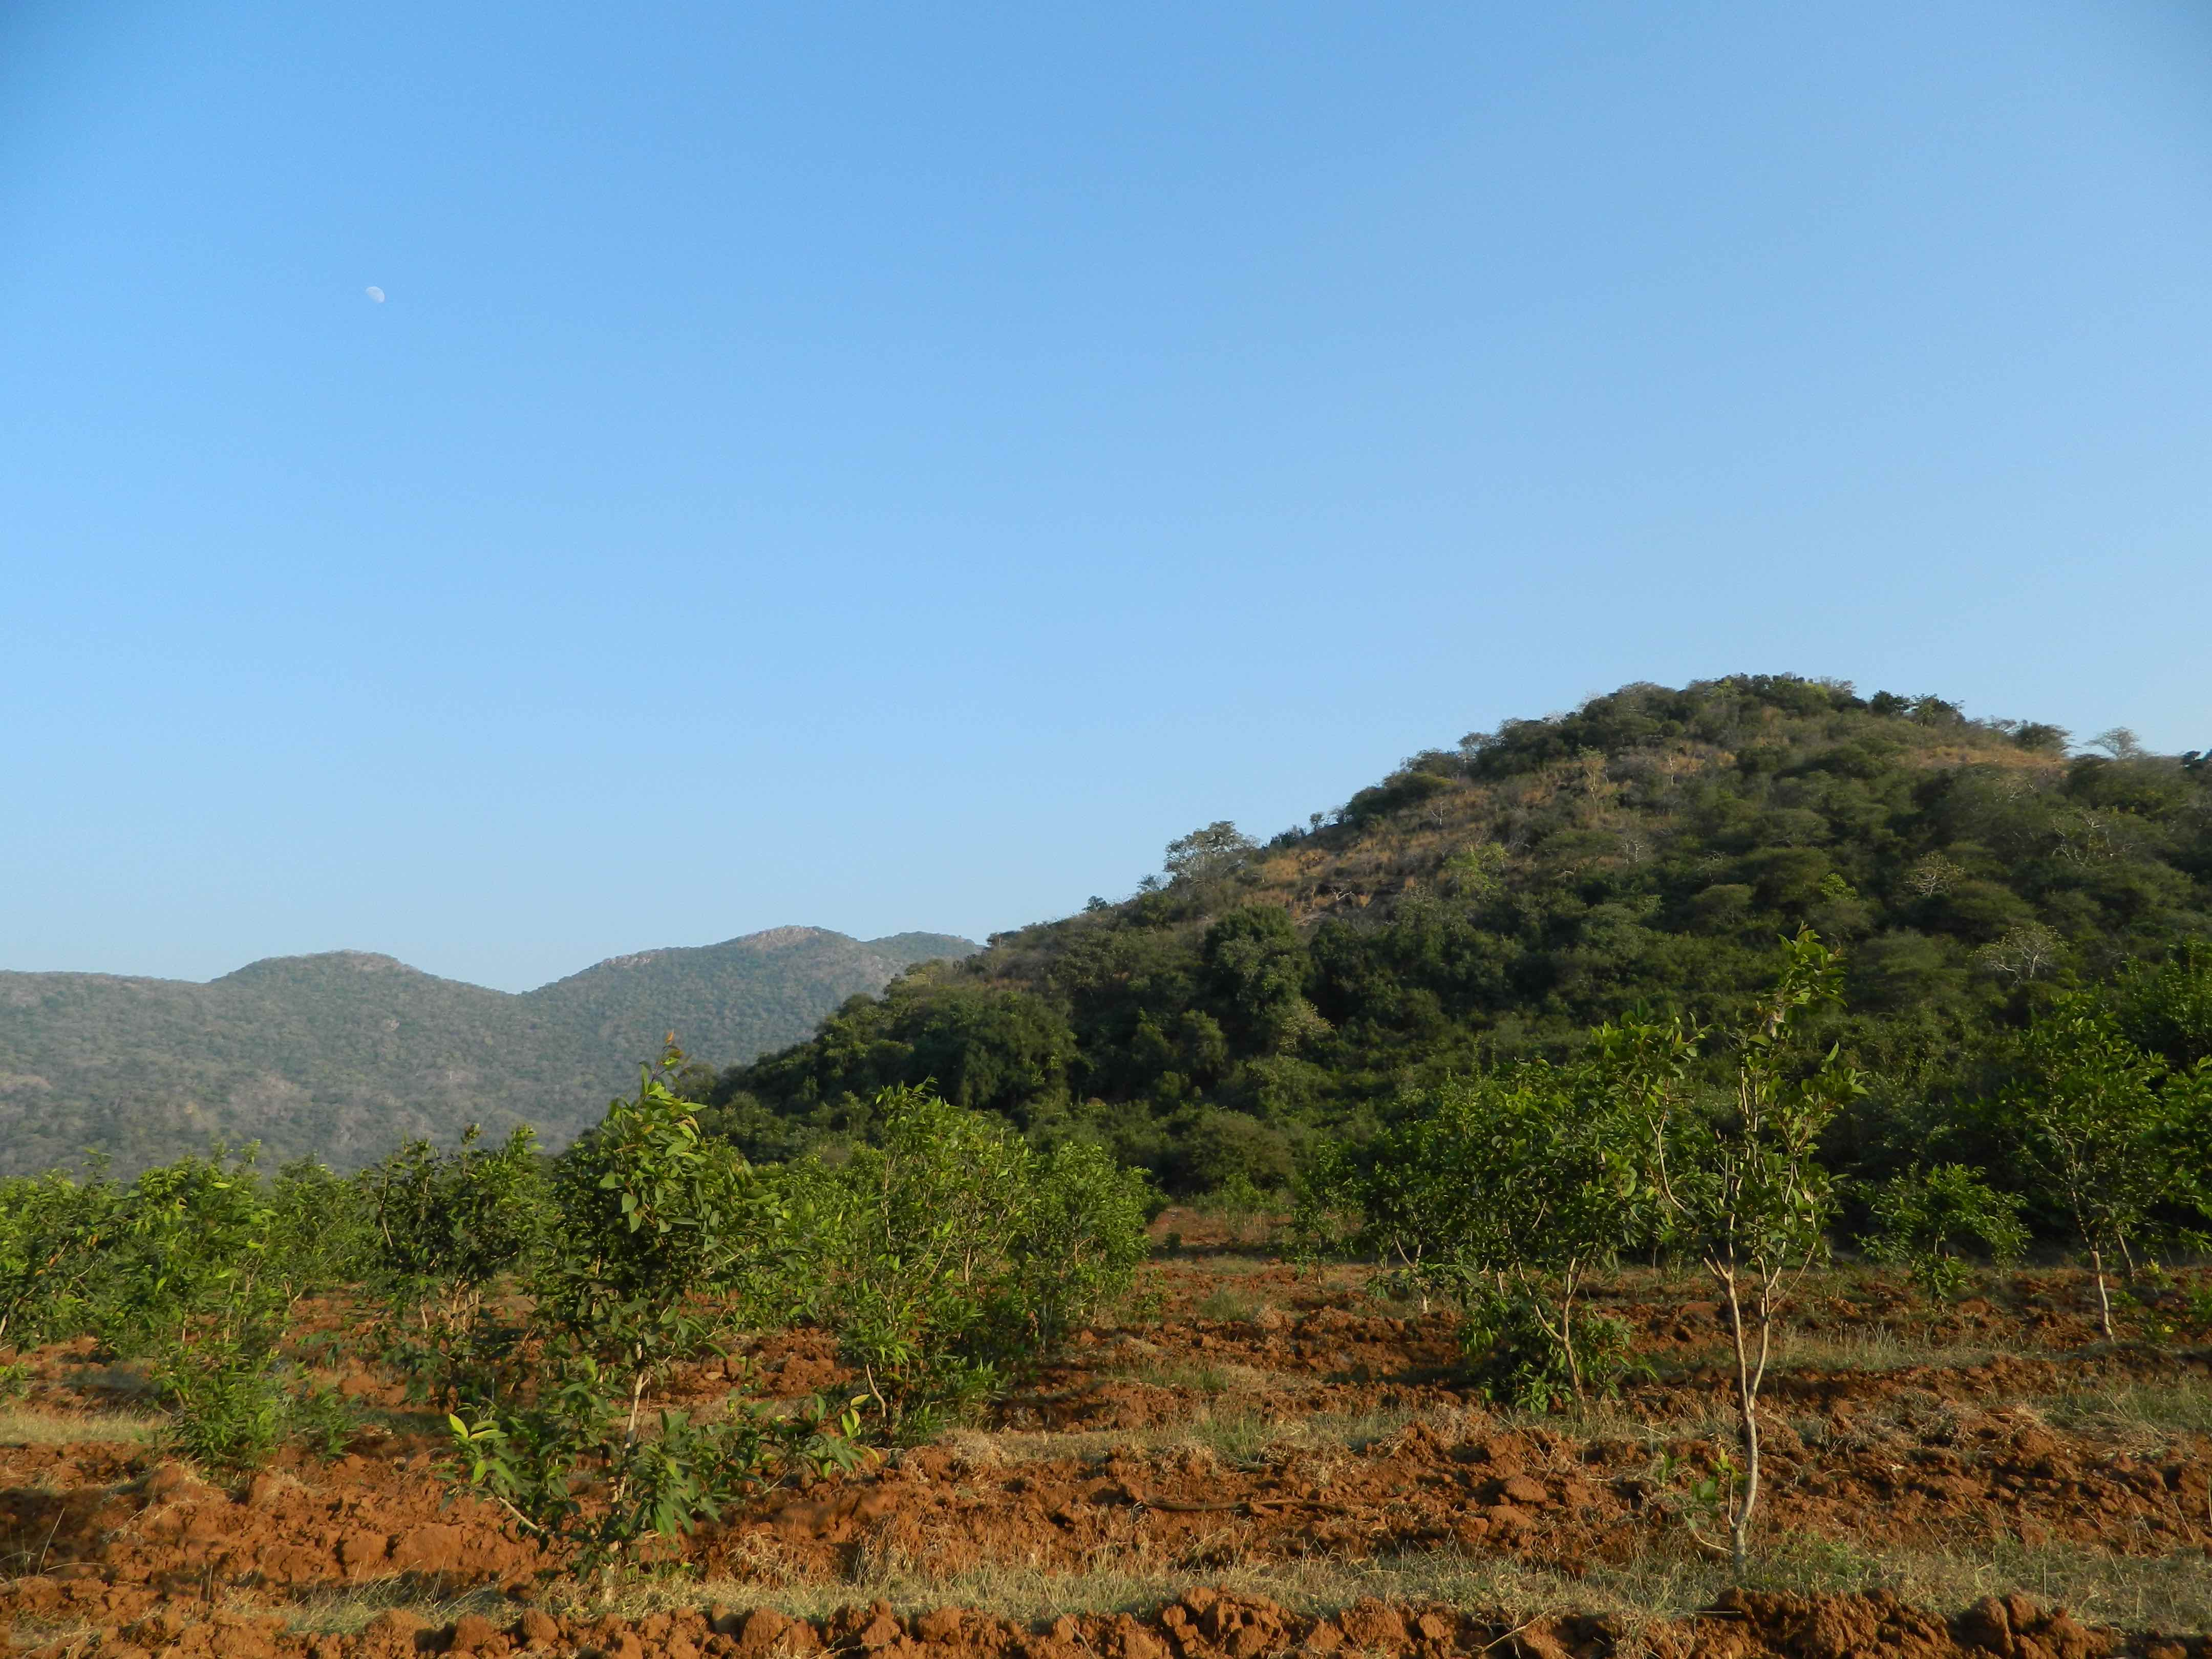 Afforestation initiatives in the adjoining wasteland areas of a forest. Credit: Reshma M Ramachandran.